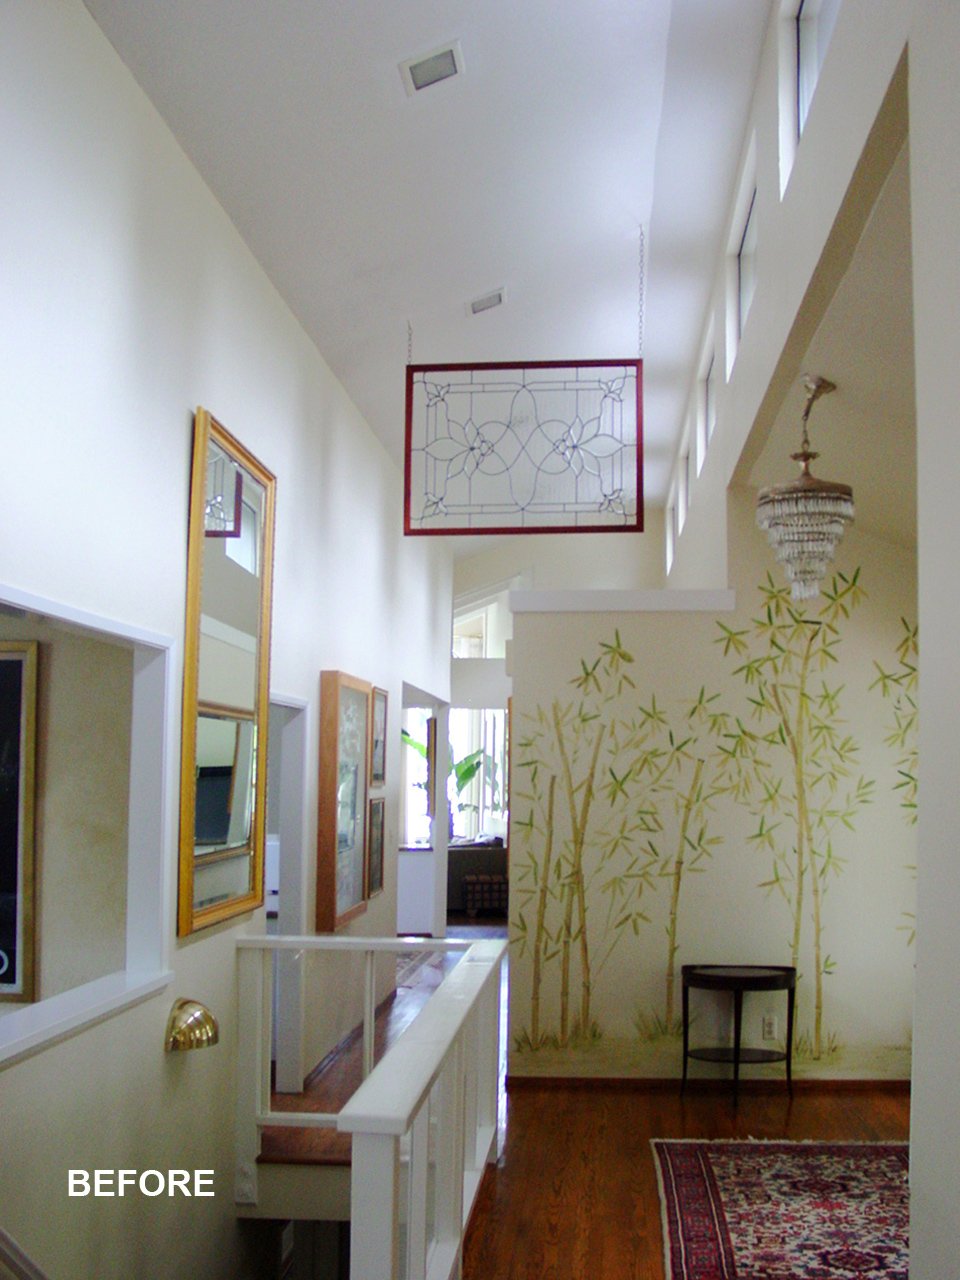 Kaplan-Architects-Lafayette-remodel-entry-galery-before-view.jpg